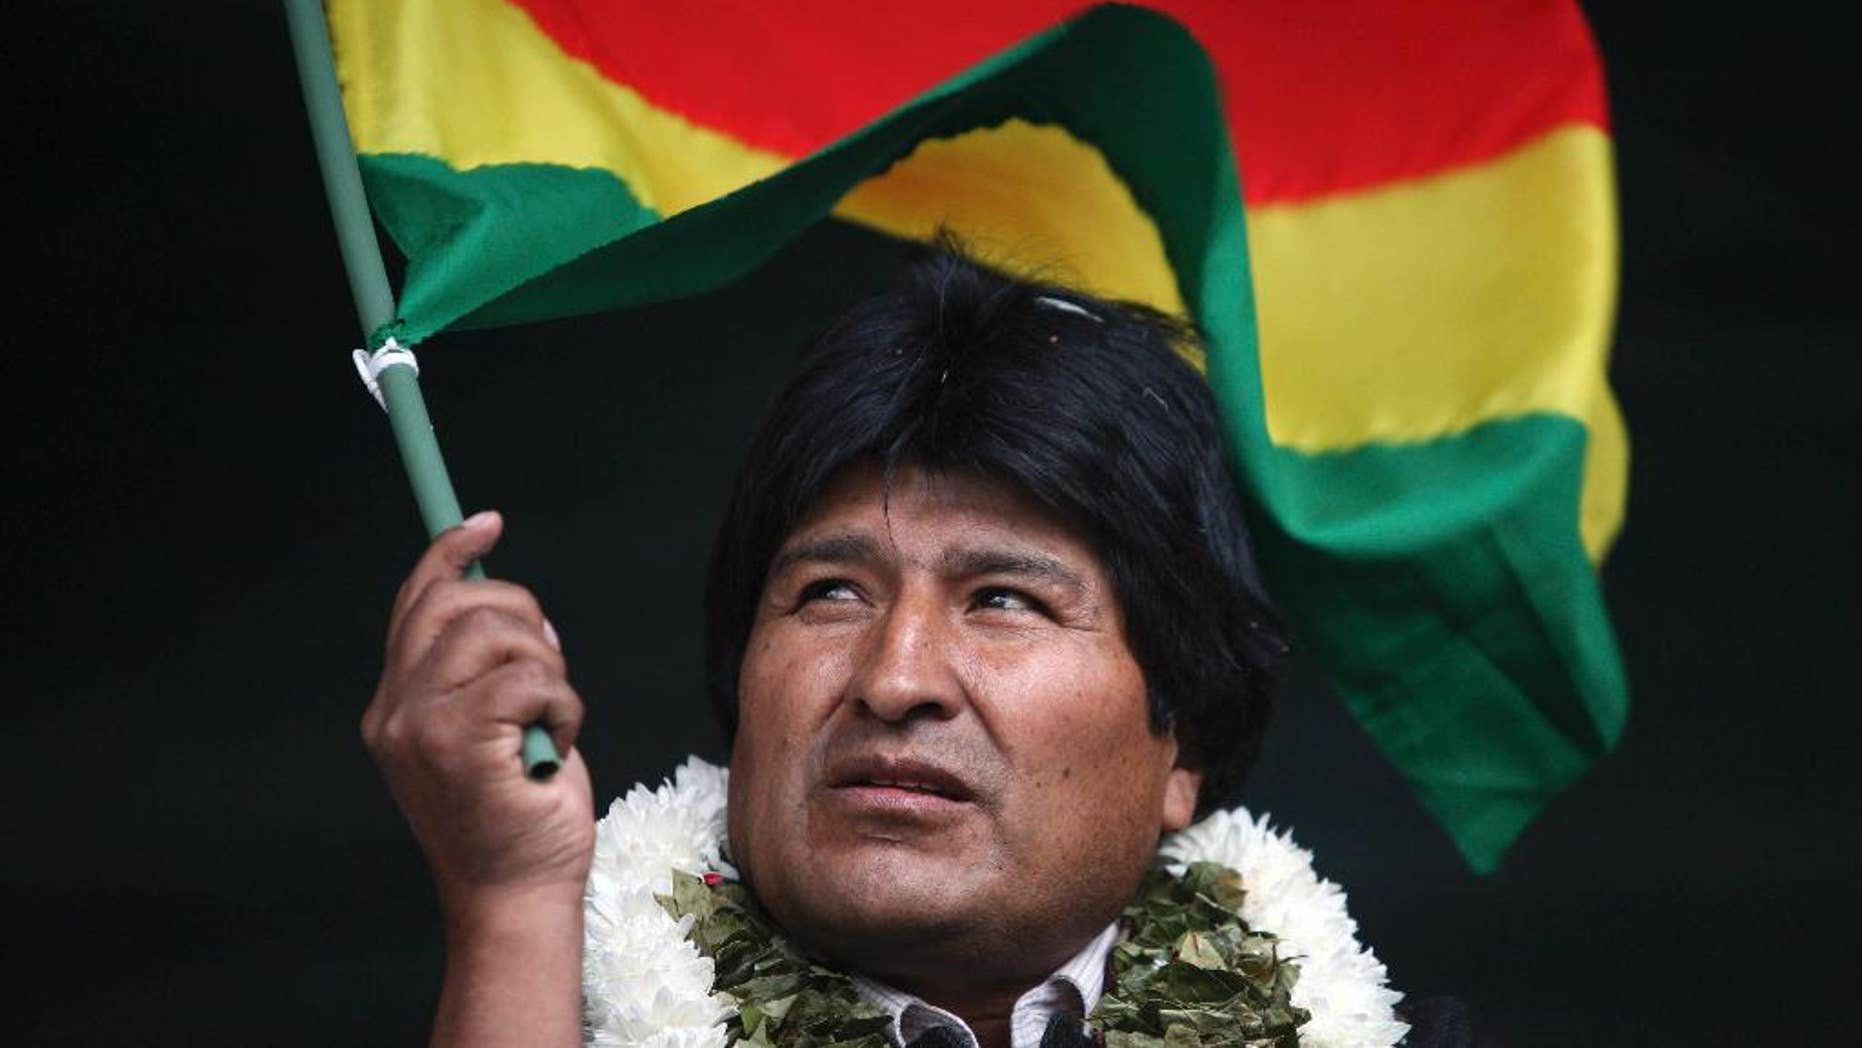 """FILE - In this Jan. 22, 2009 file photo, Bolivia's President Evo Morales waves a Bolivian flag during a rally in support of the proposed new constitution in Cochabamba, Bolivia. Morales inaugurated a $7 million museum on Feb. 2, 2017 in his native village of Orinoca, coined the Museum of the Democratic and Cultural Revolution. Bolivia's political opposition has dubbed it the """"Evo Museum."""" (AP Photo/Dado Galdieri, File)"""